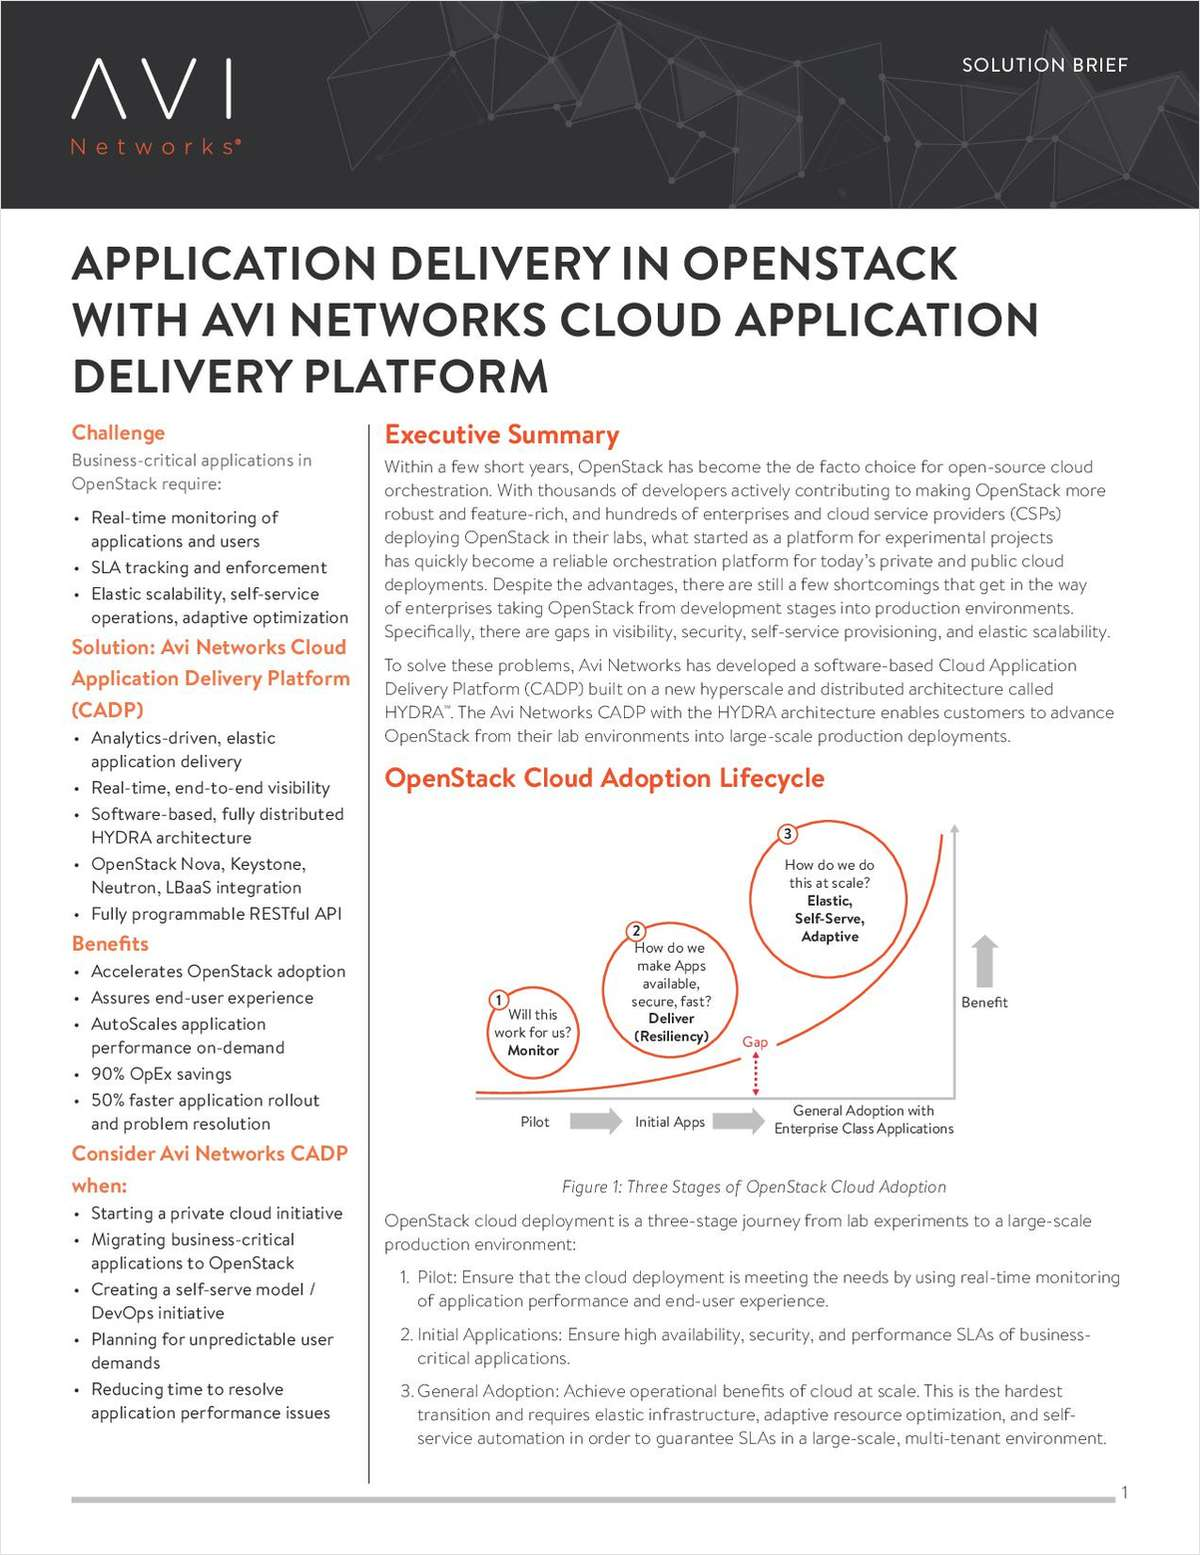 Application Delivery in OpenStack with Avi Networks